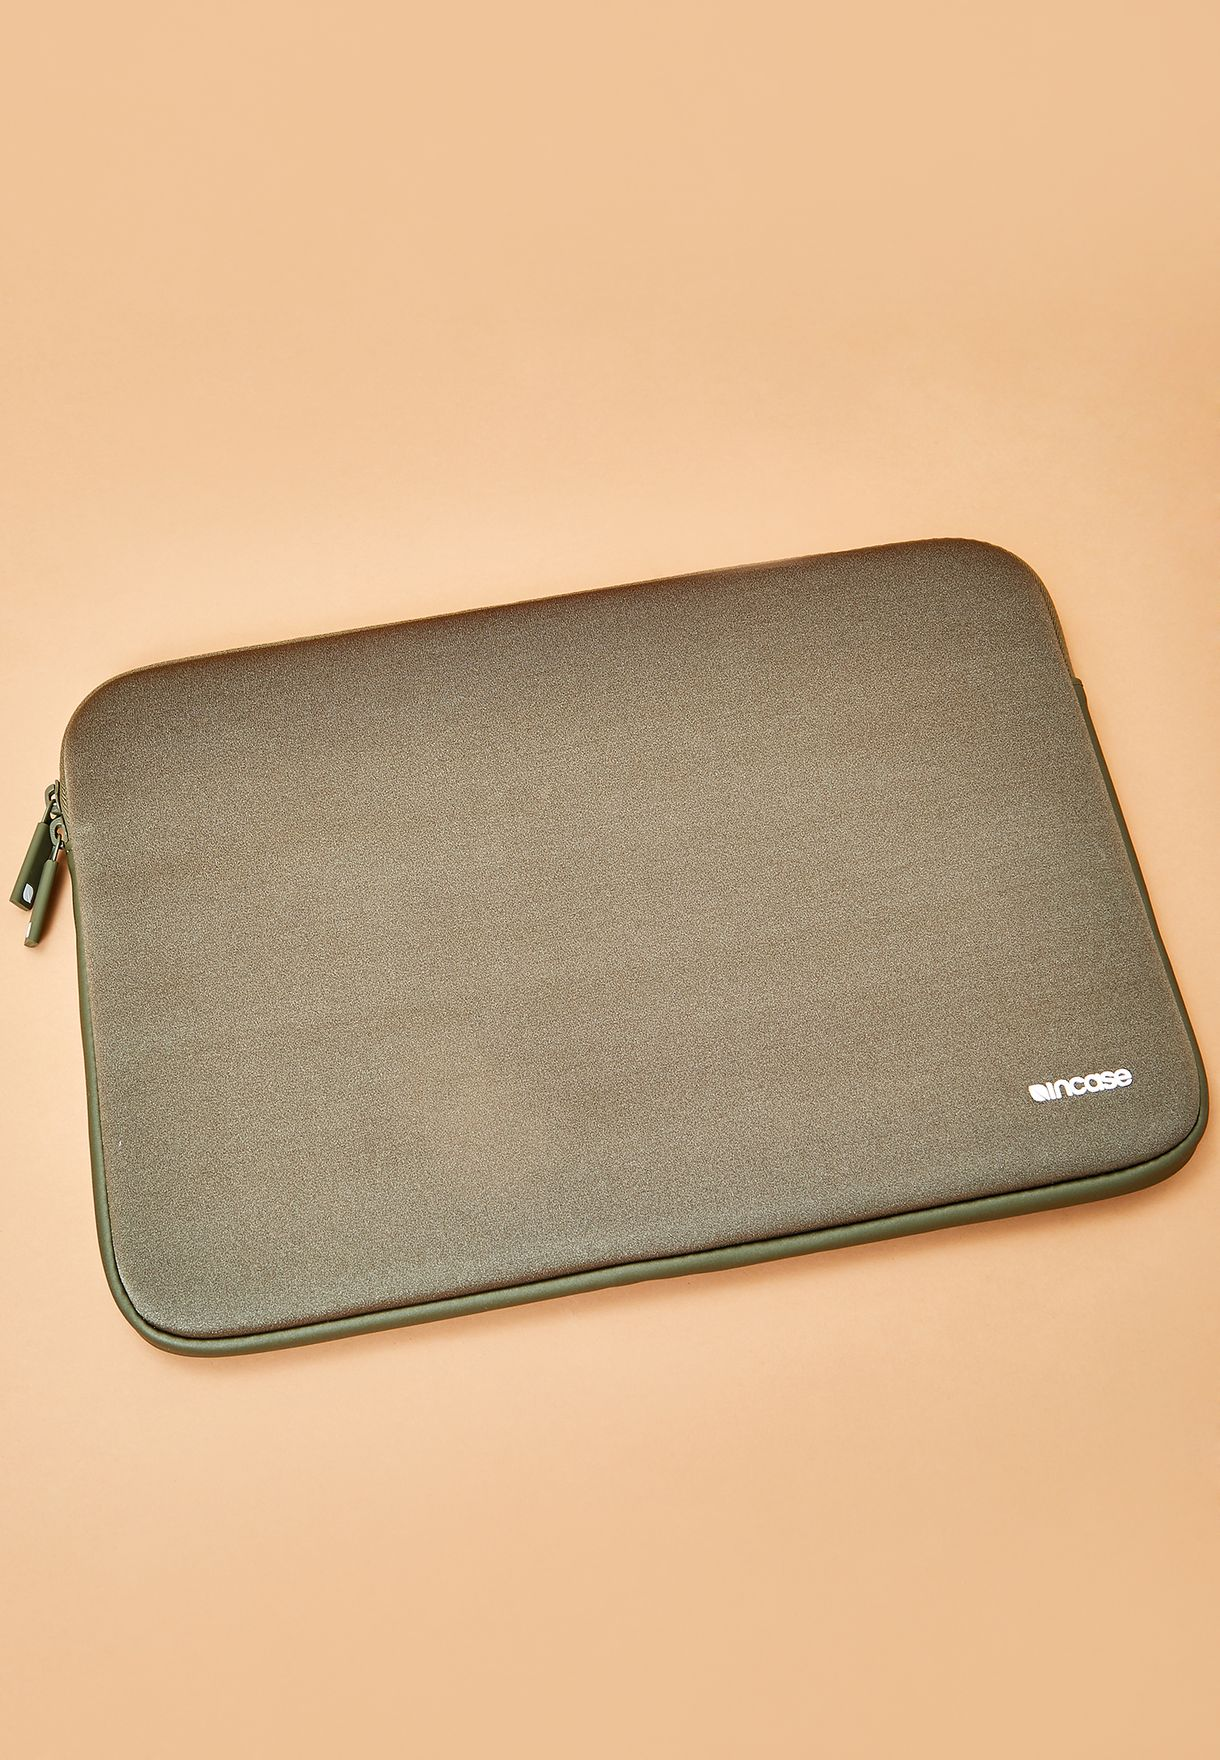 "15"" Thunderbolt Macbook Sleeve"